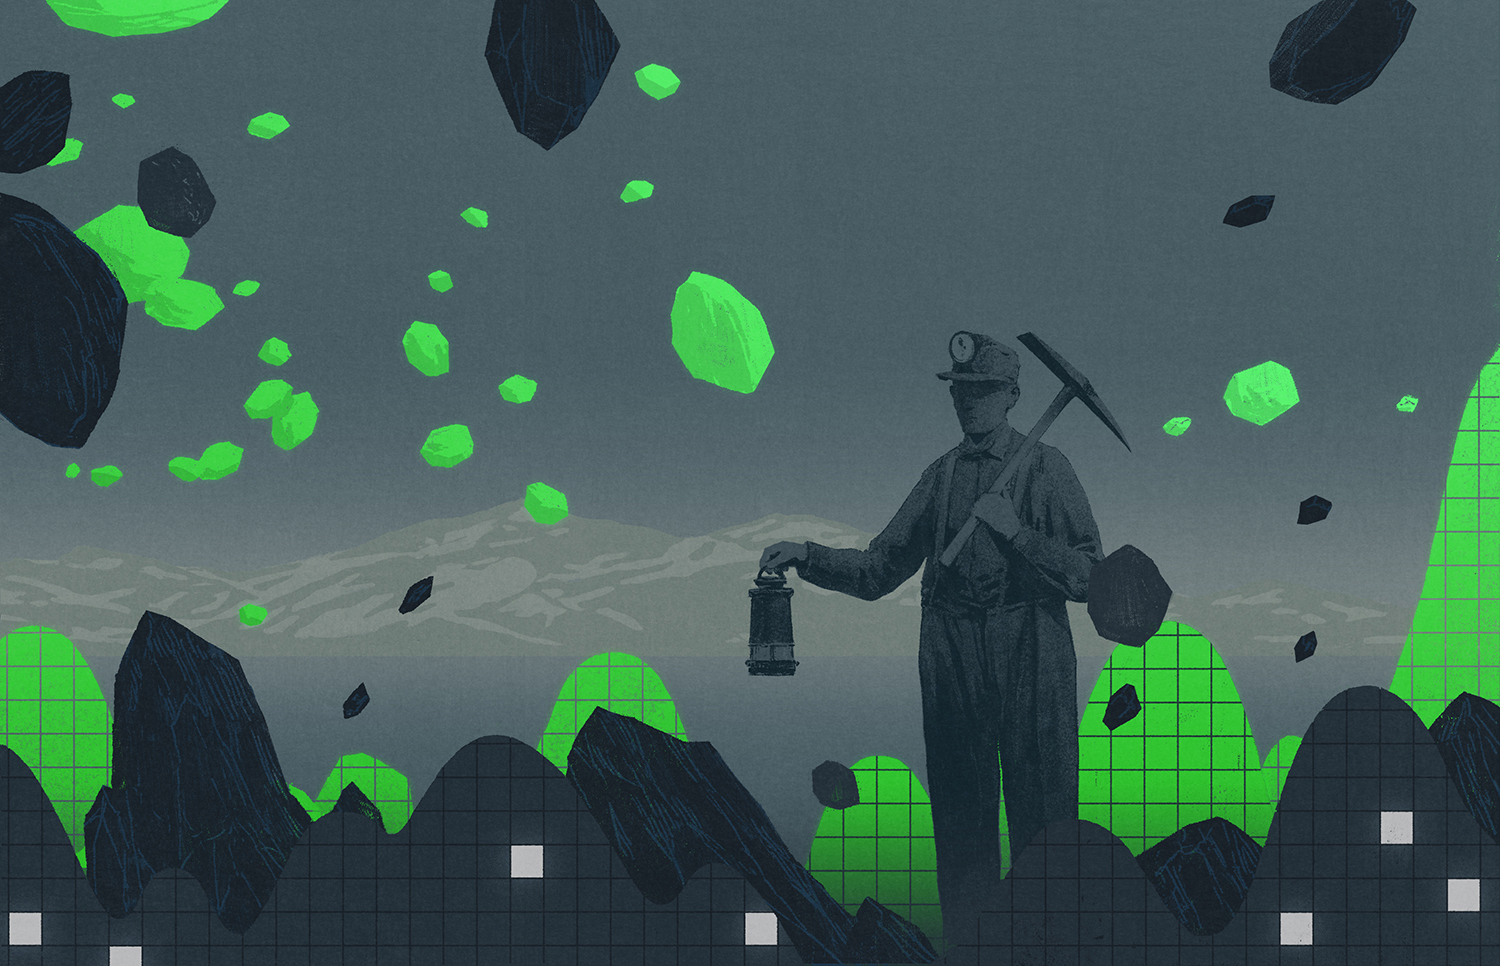 """Content moderators are """"the coal workers of Silicon Valley,"""" one Accenture employee told TIME. The dangerous, underpaid work of underground coal mining was the  absolute necessary counterpart  of the clean, safe world above, author George Orwell observed in 1937."""